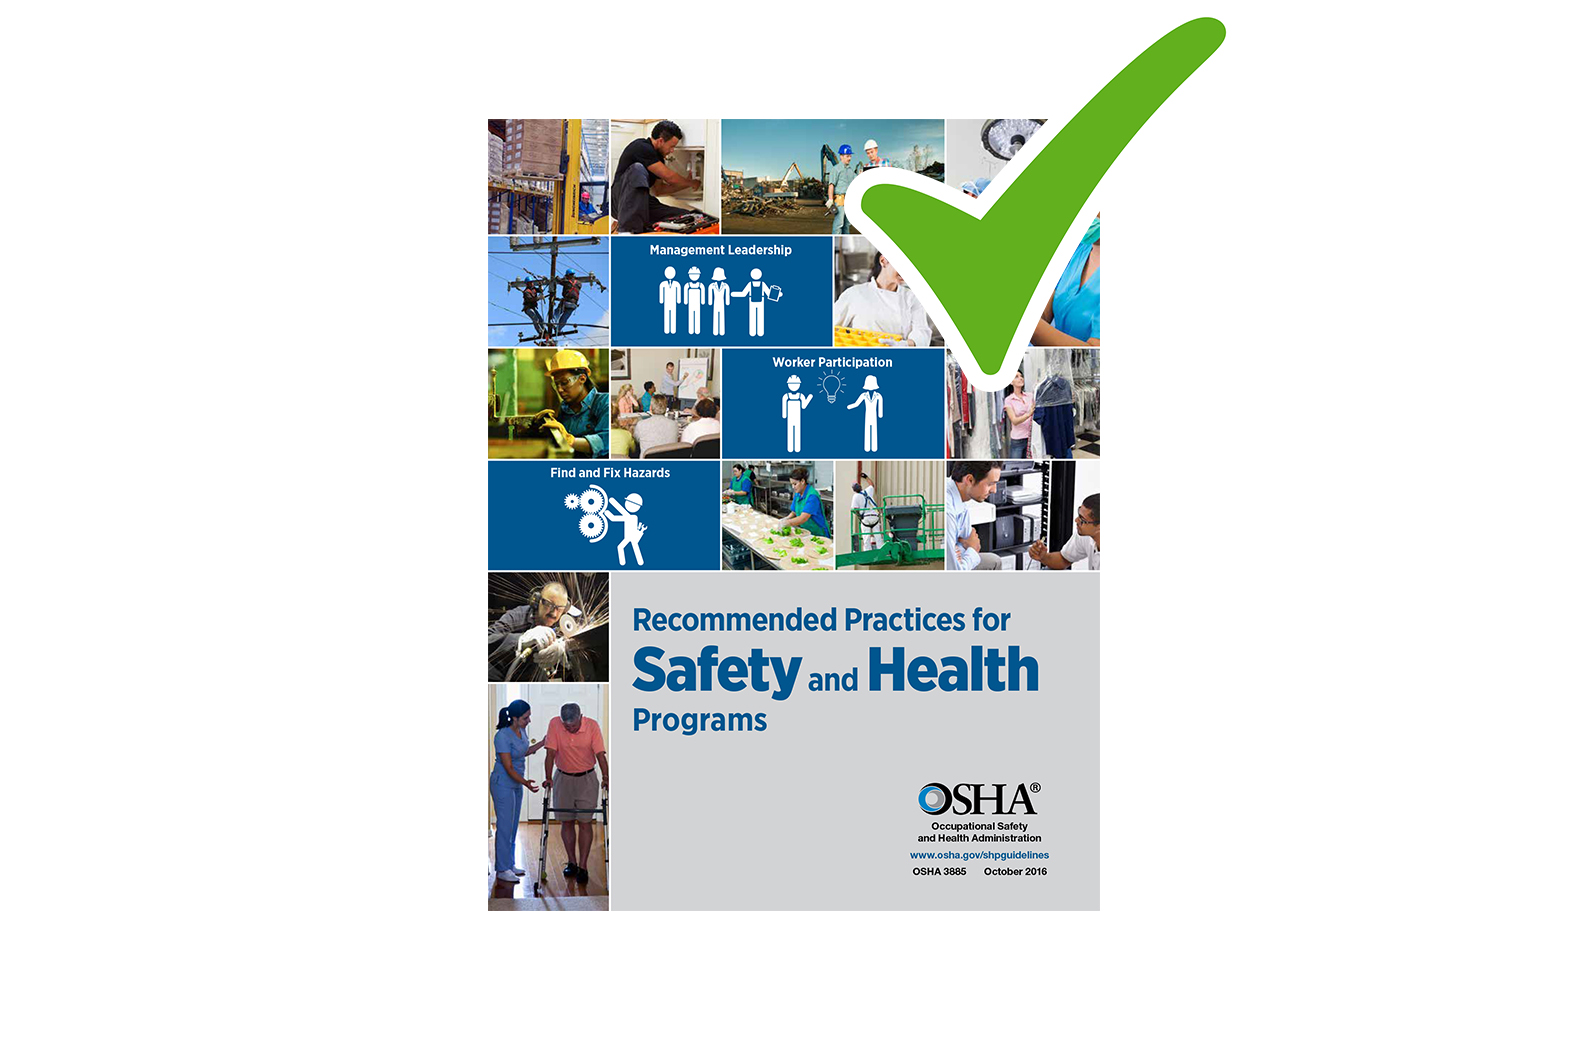 OSHA Updates Guidelines for Health and Safety Programs | EC Mag